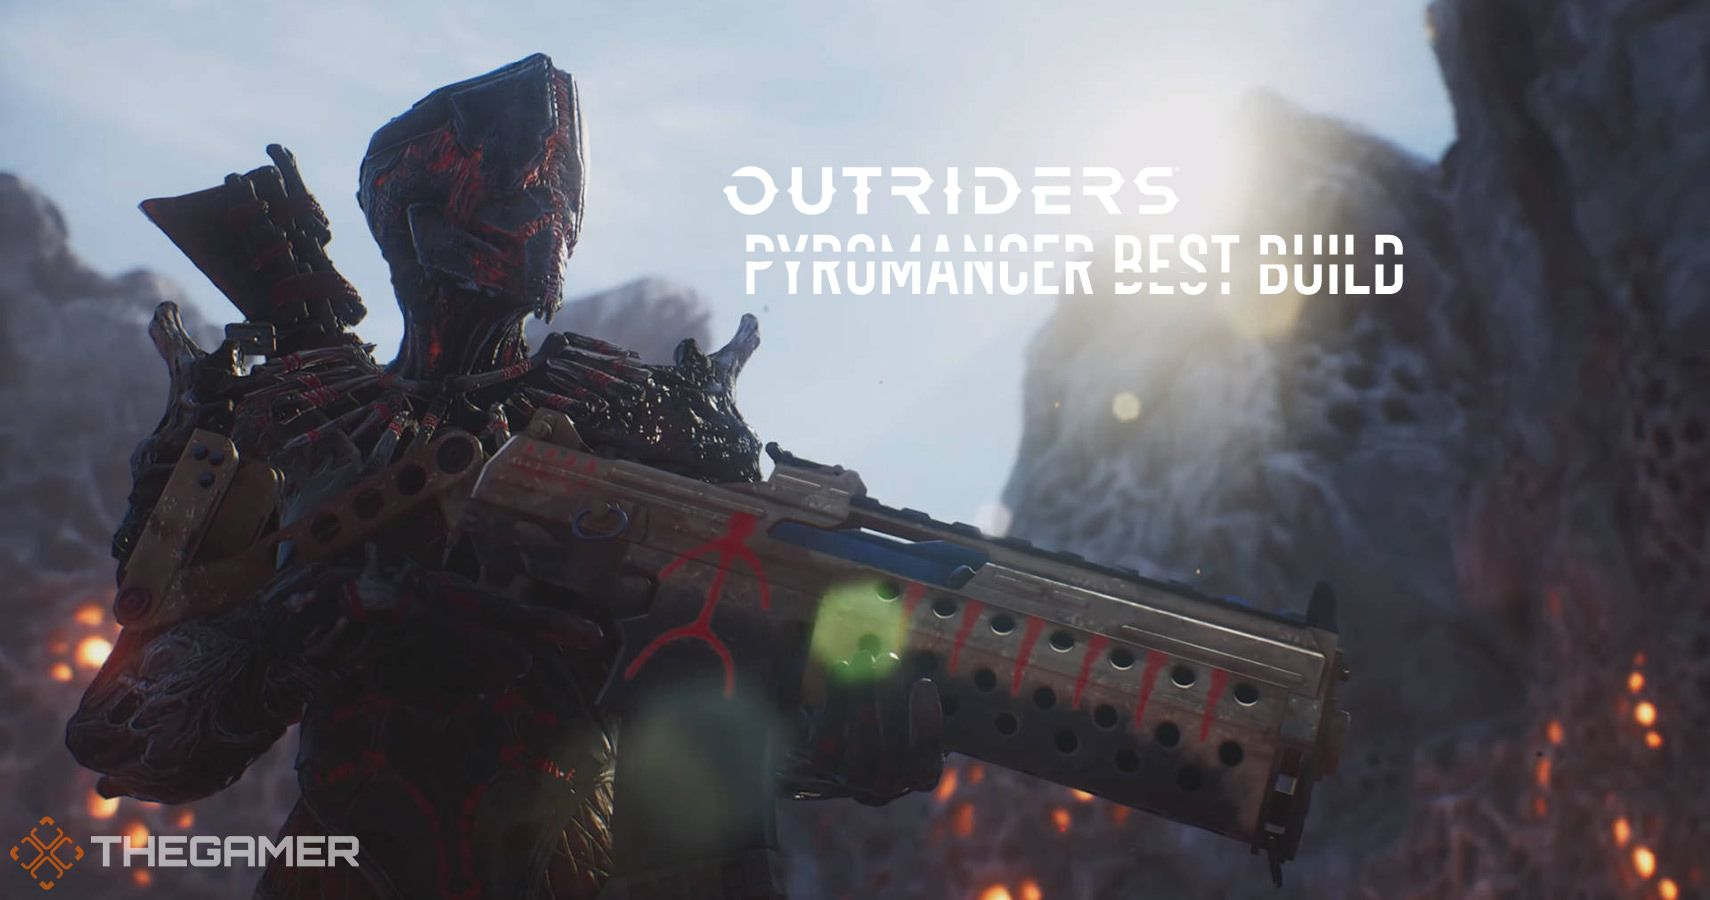 Outriders: Pyromancer Best Build